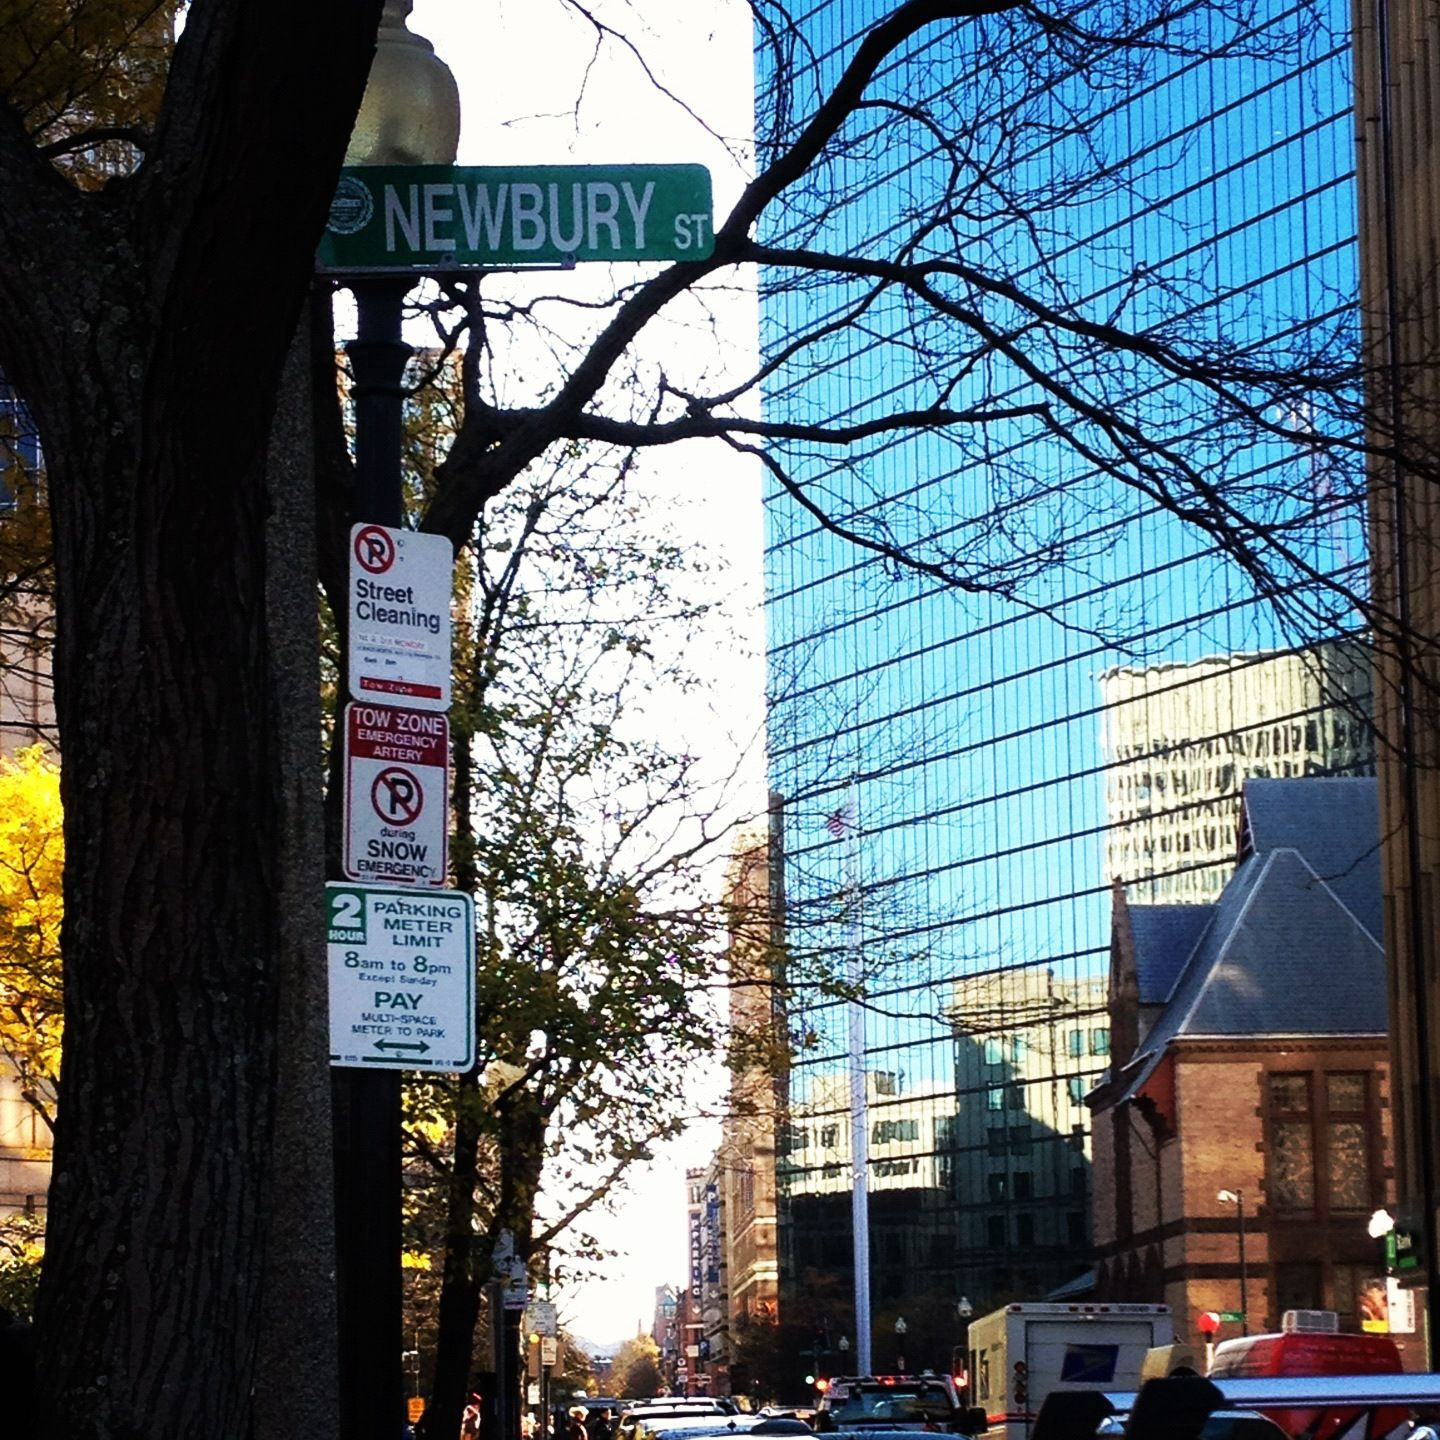 Newbury Street Is A Por Downtown Boston Destination Filled With Restaurants And S Photo Credit